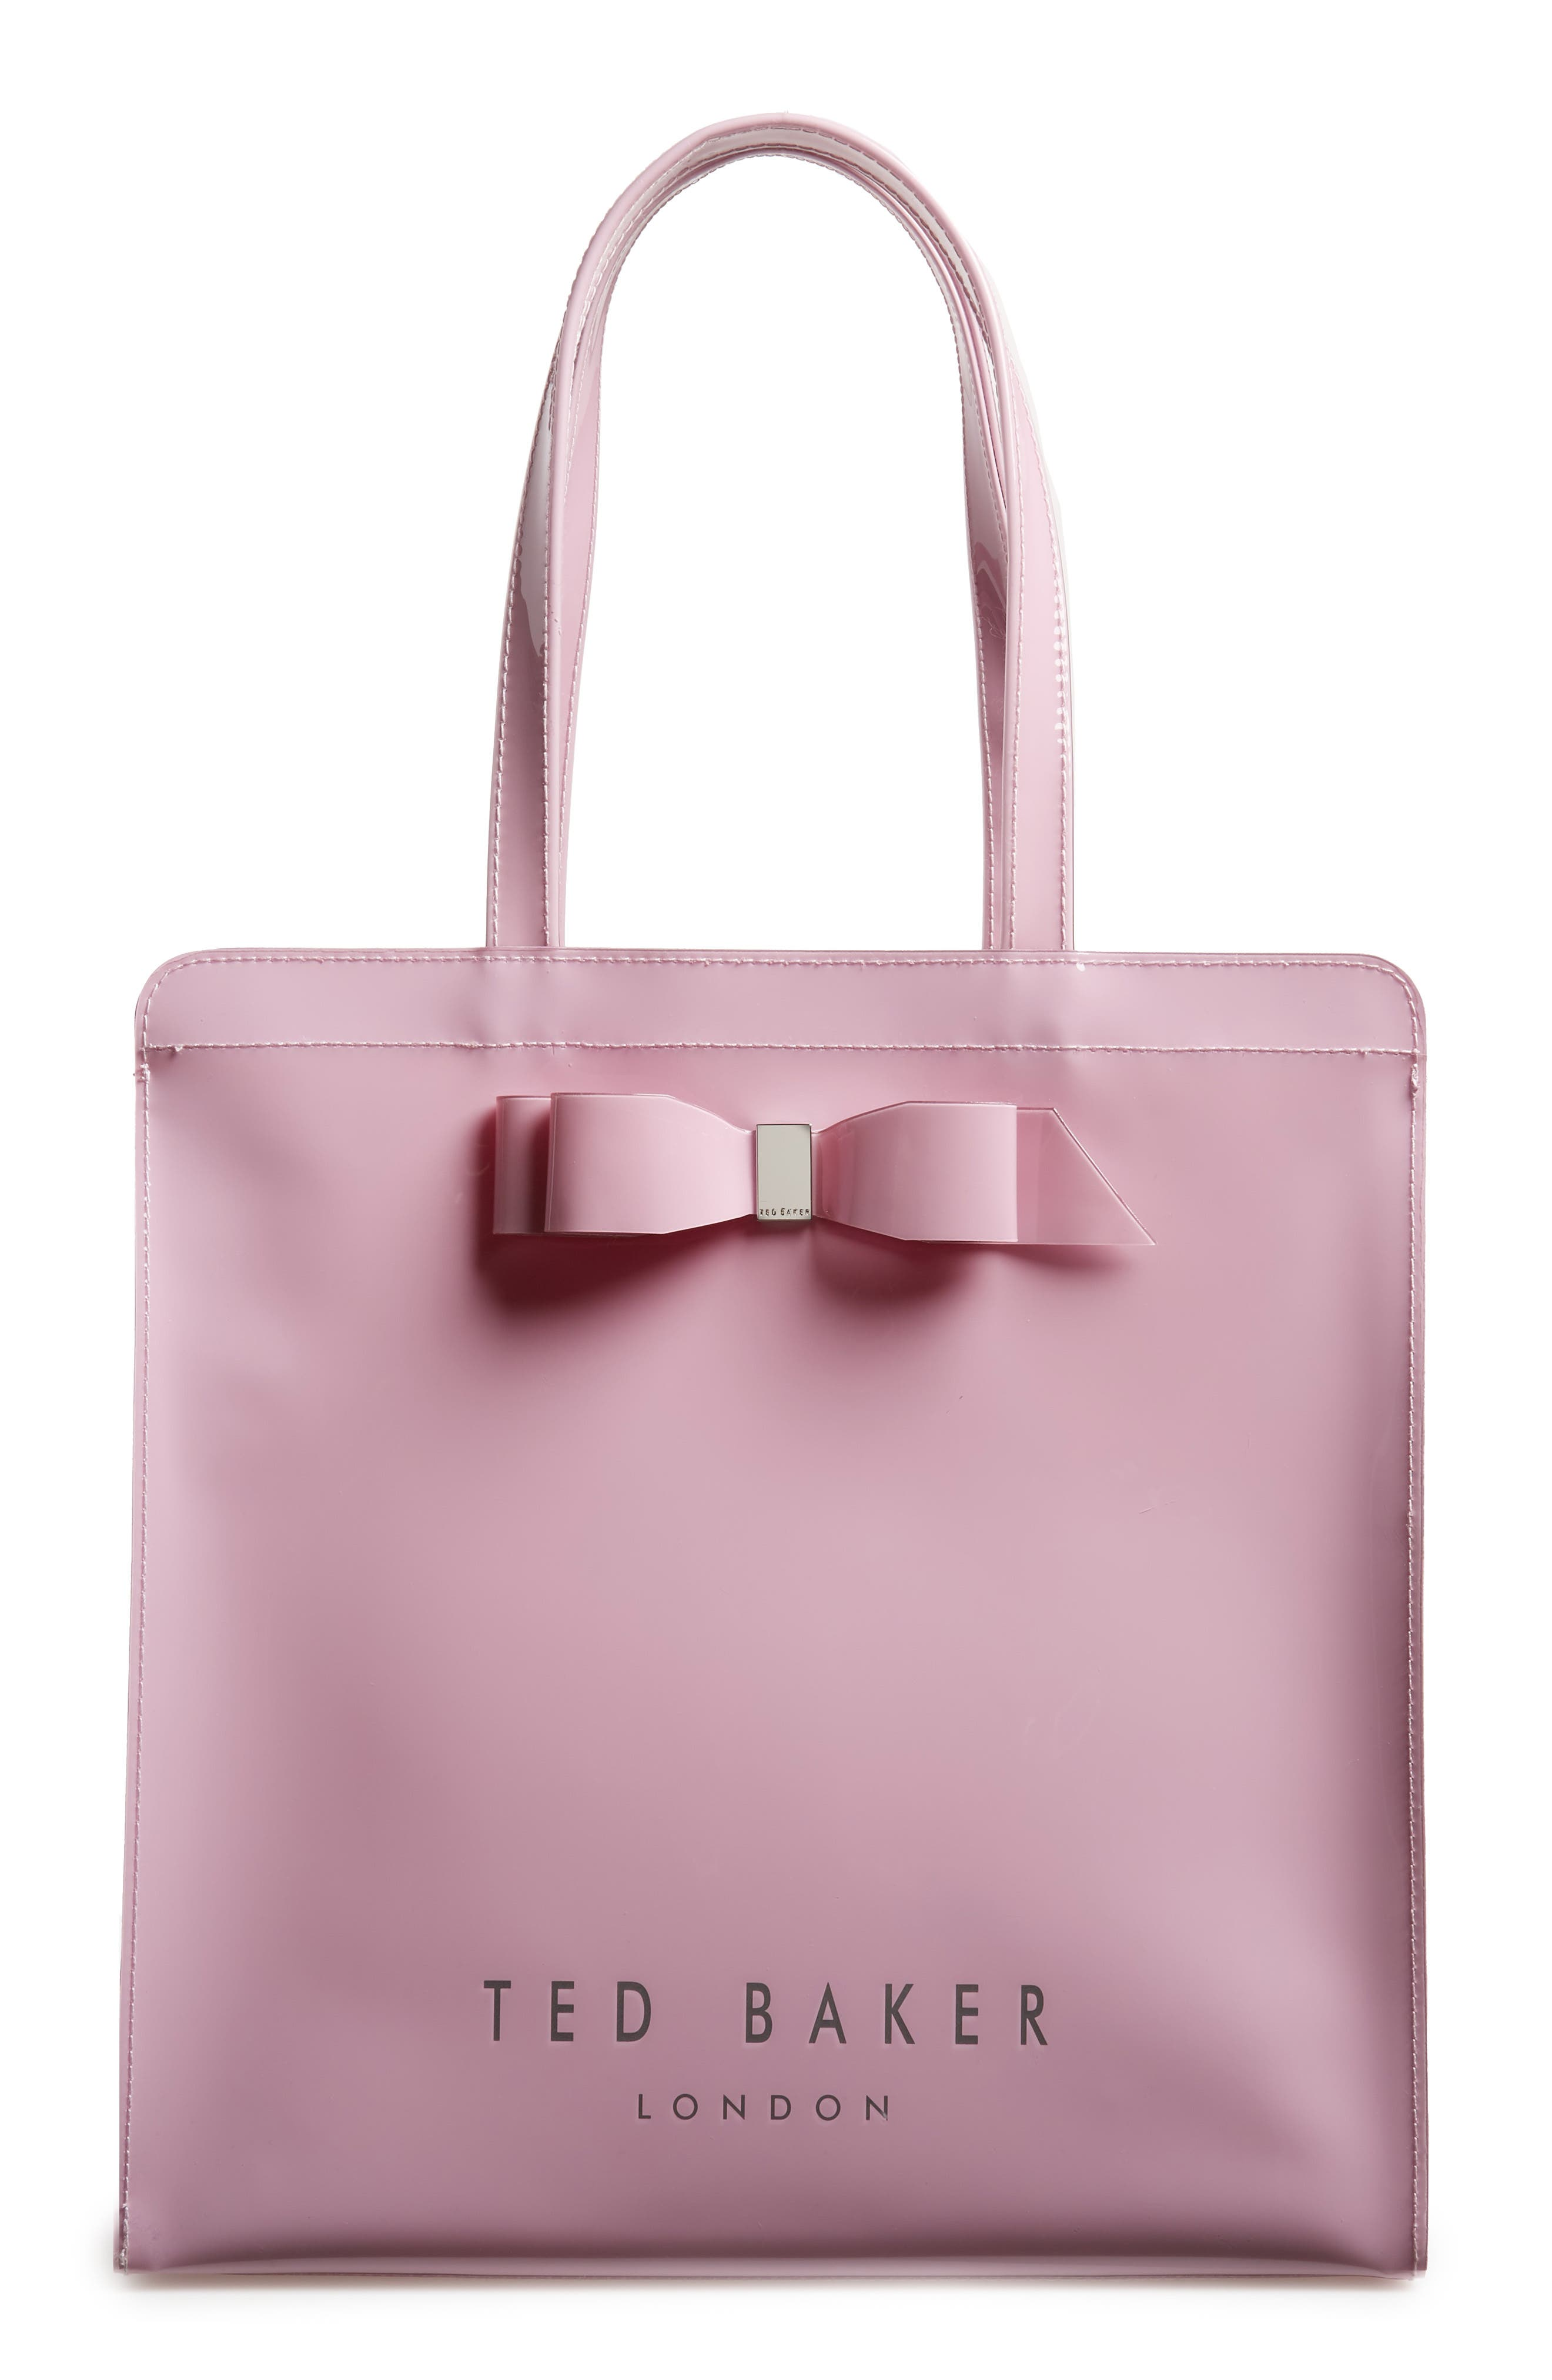 2af2f5f0ca52 Ted Baker London Tote Bags for Women  Leather